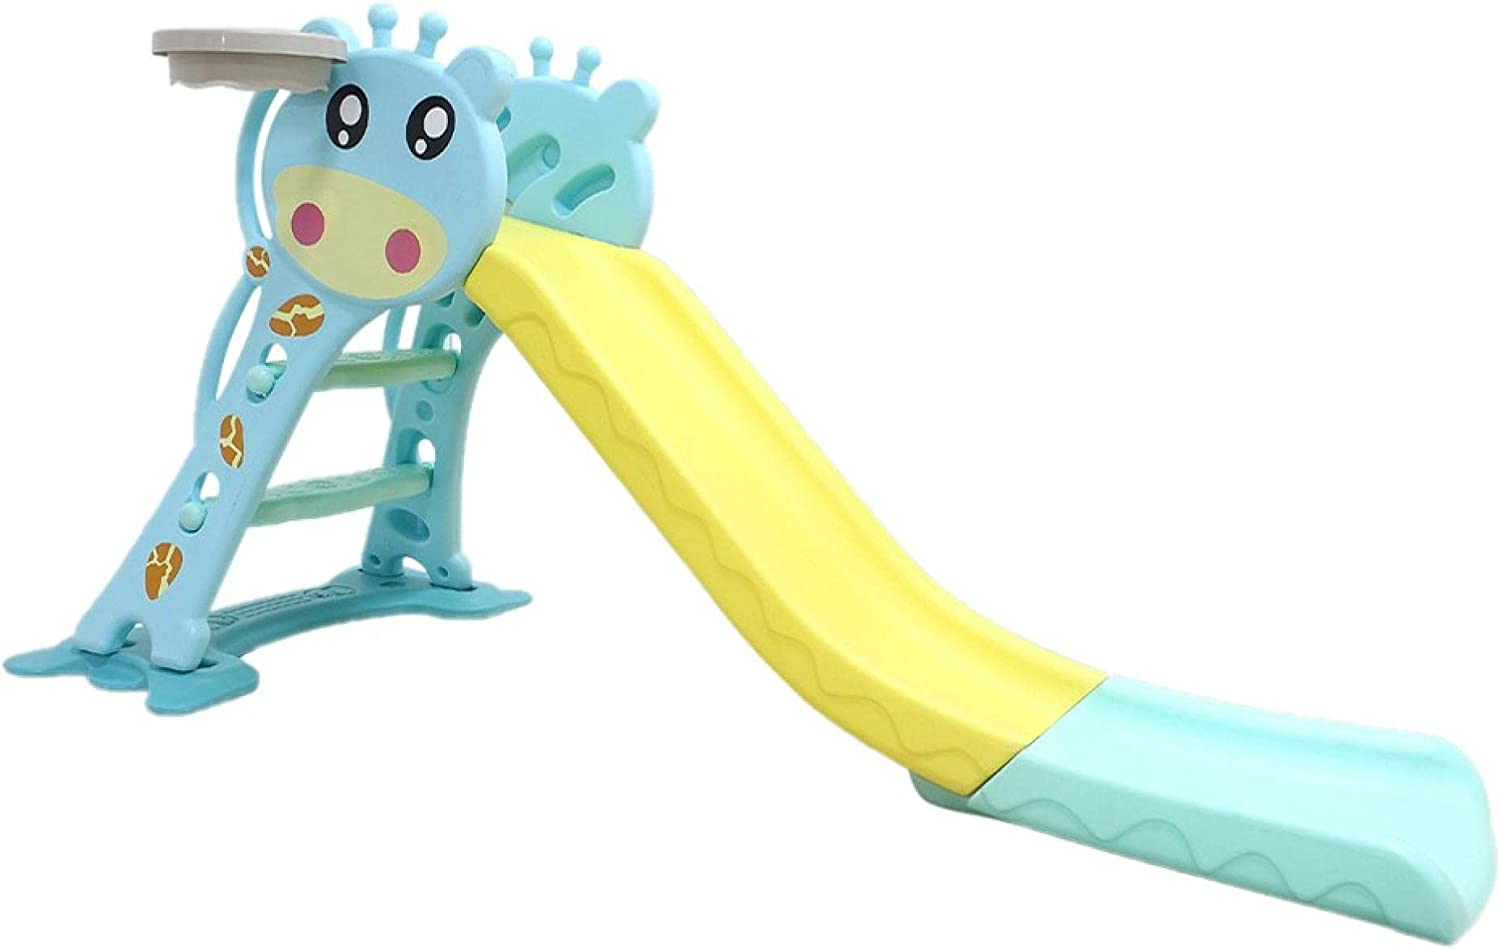 Huokan Foldable Childrens Slide Climbing Stairs with Basketball